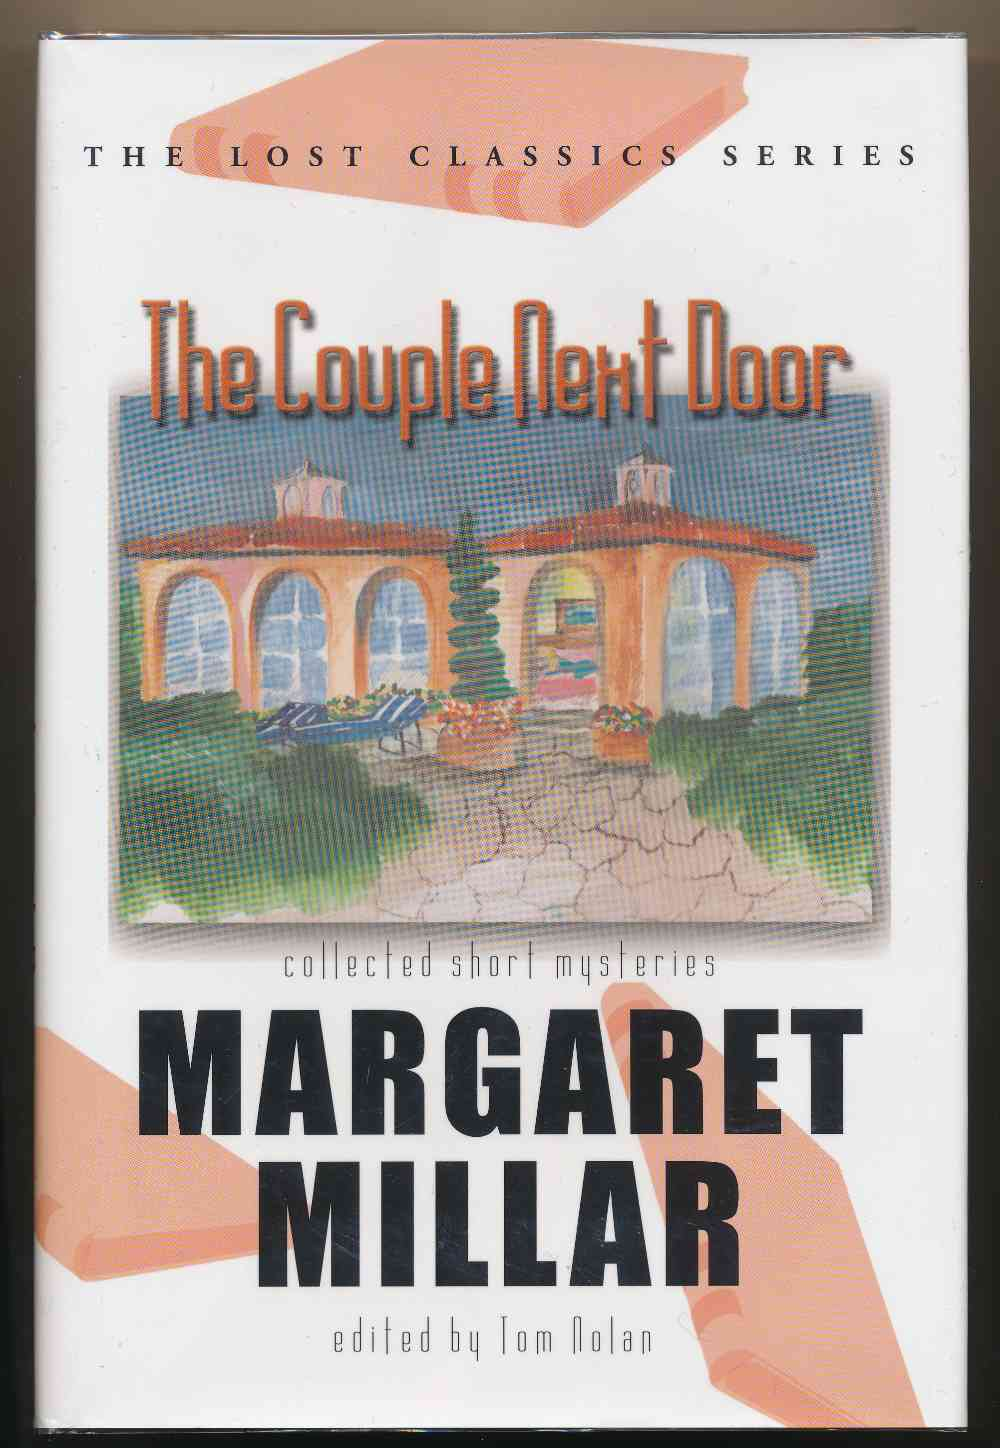 The couple next door : collected short mysteries